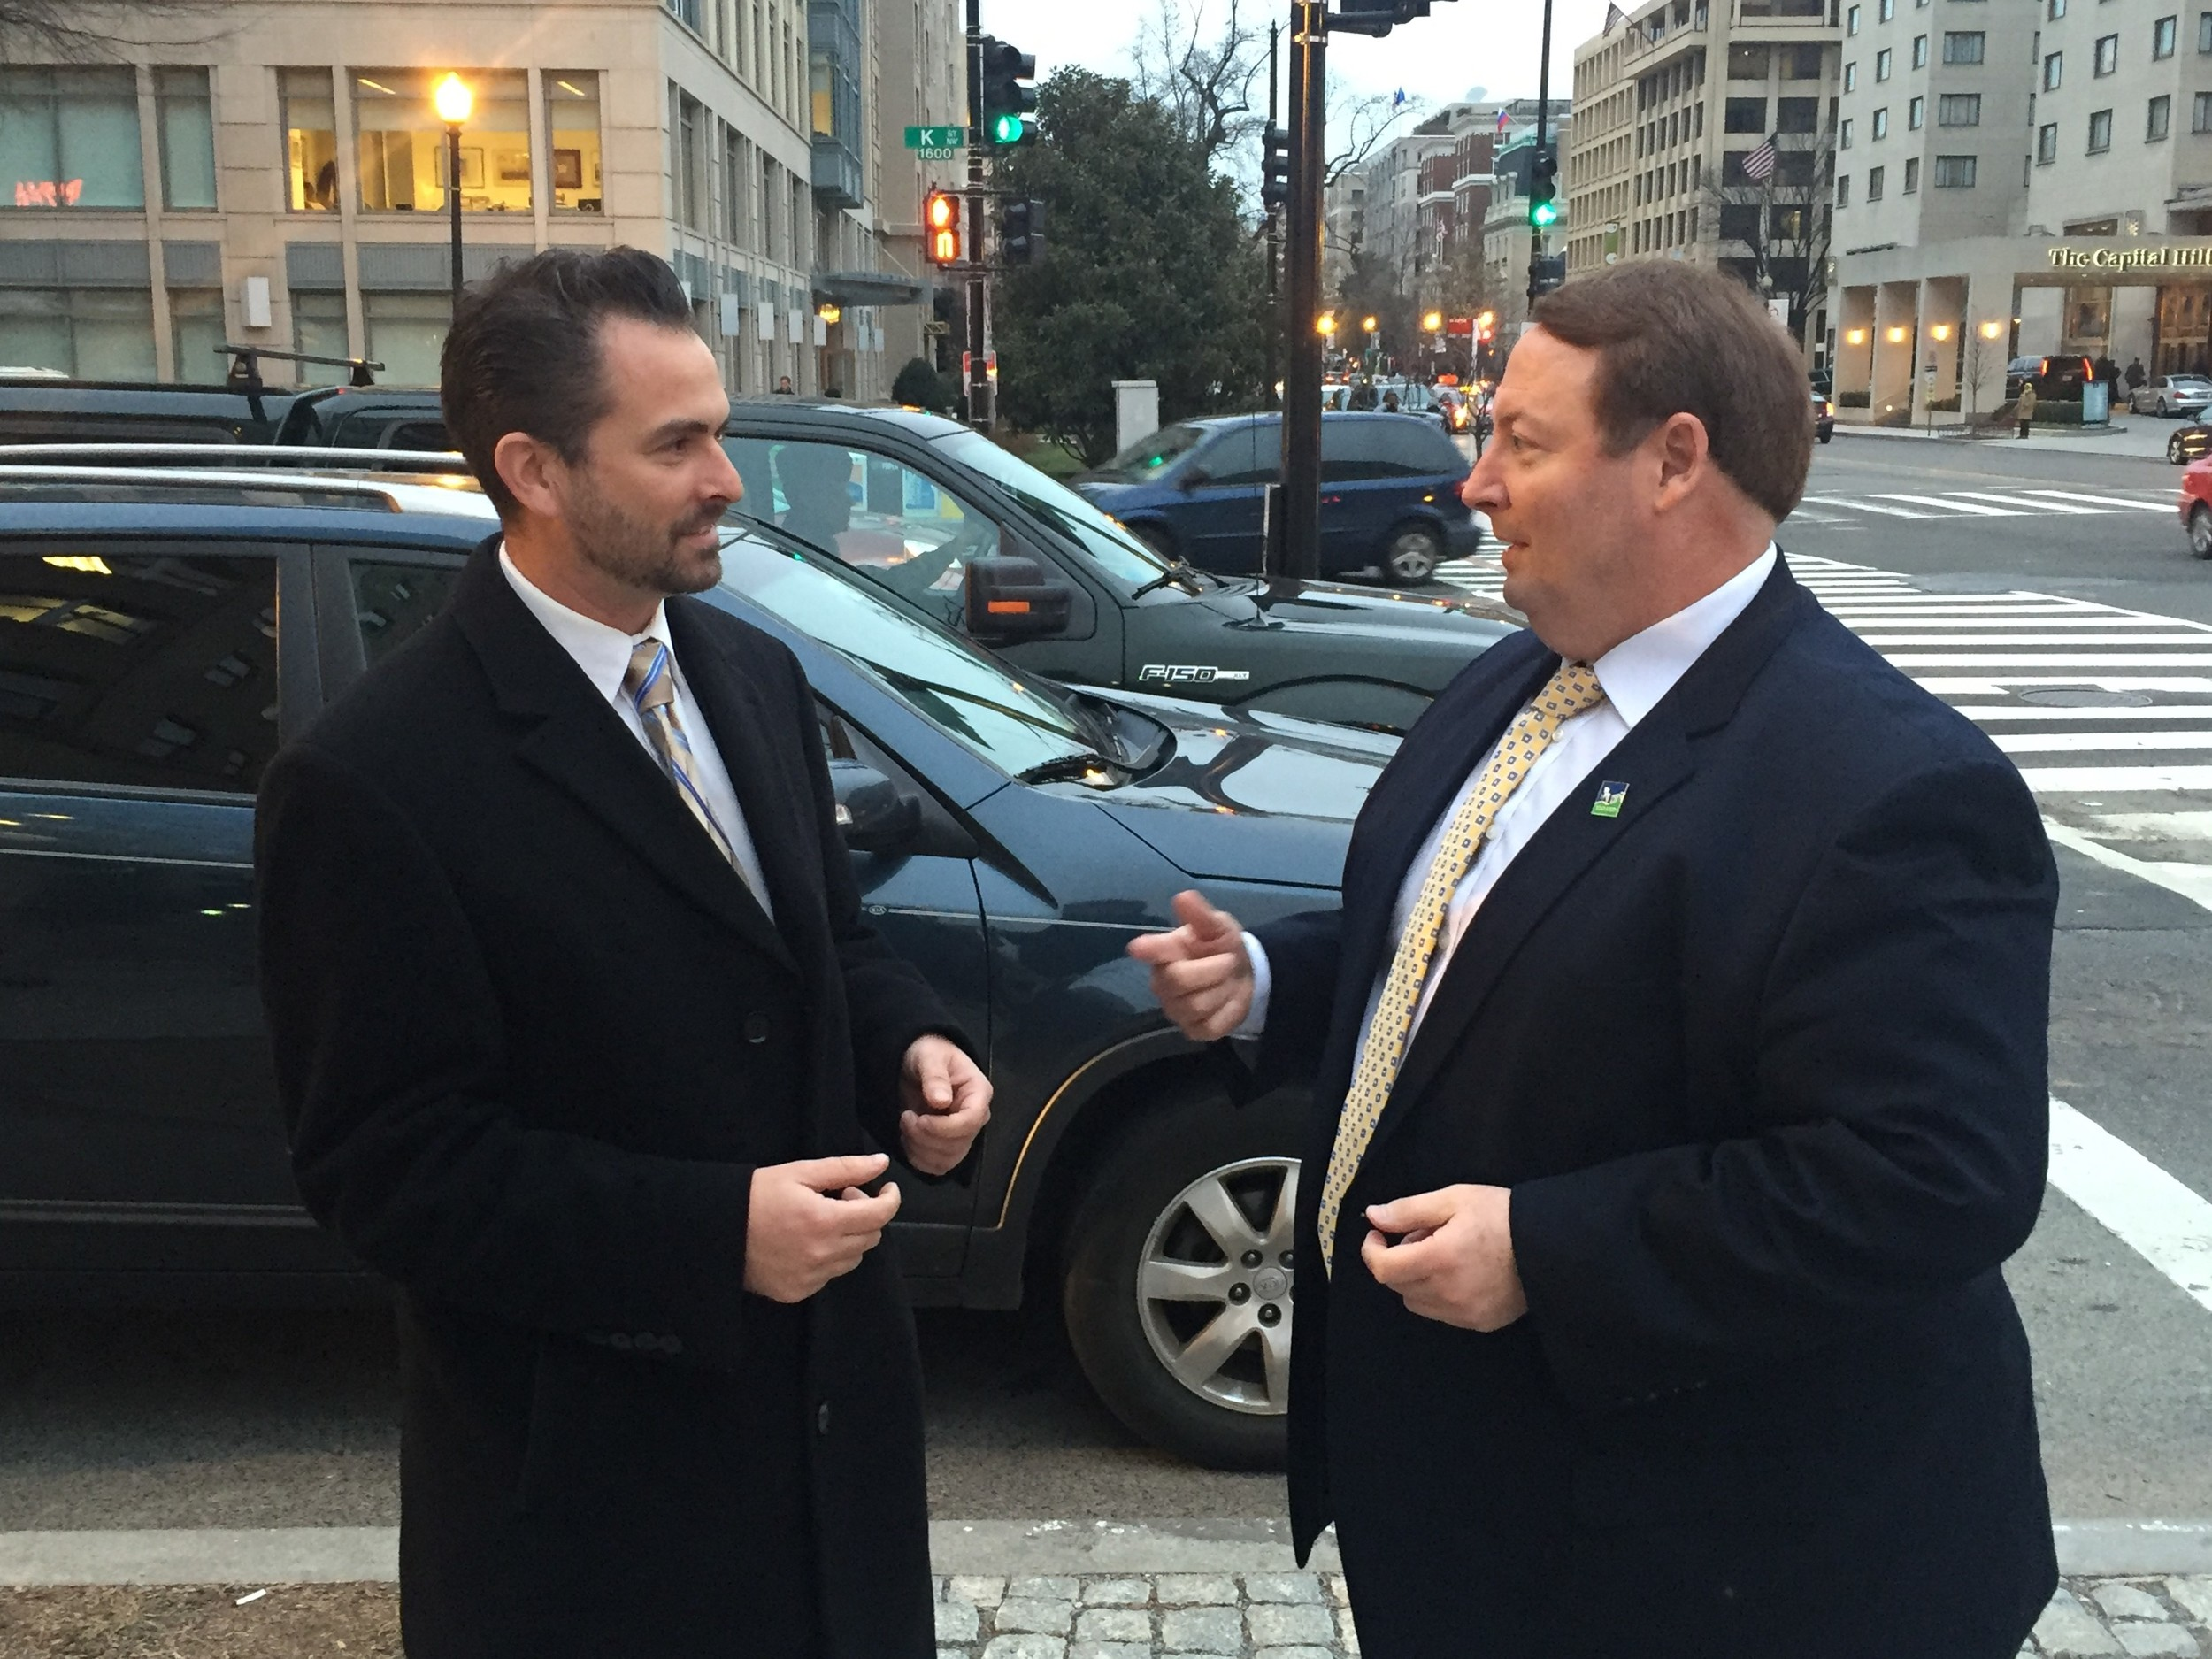 Joel Rubin, left, with Tigard Mayor John Cook, right, discusses federal items highlighted at a recent Conference of Mayors event in Washington, D.C. Rubin, who leads CFM's federal affairs team, just became the firm's newest partner.